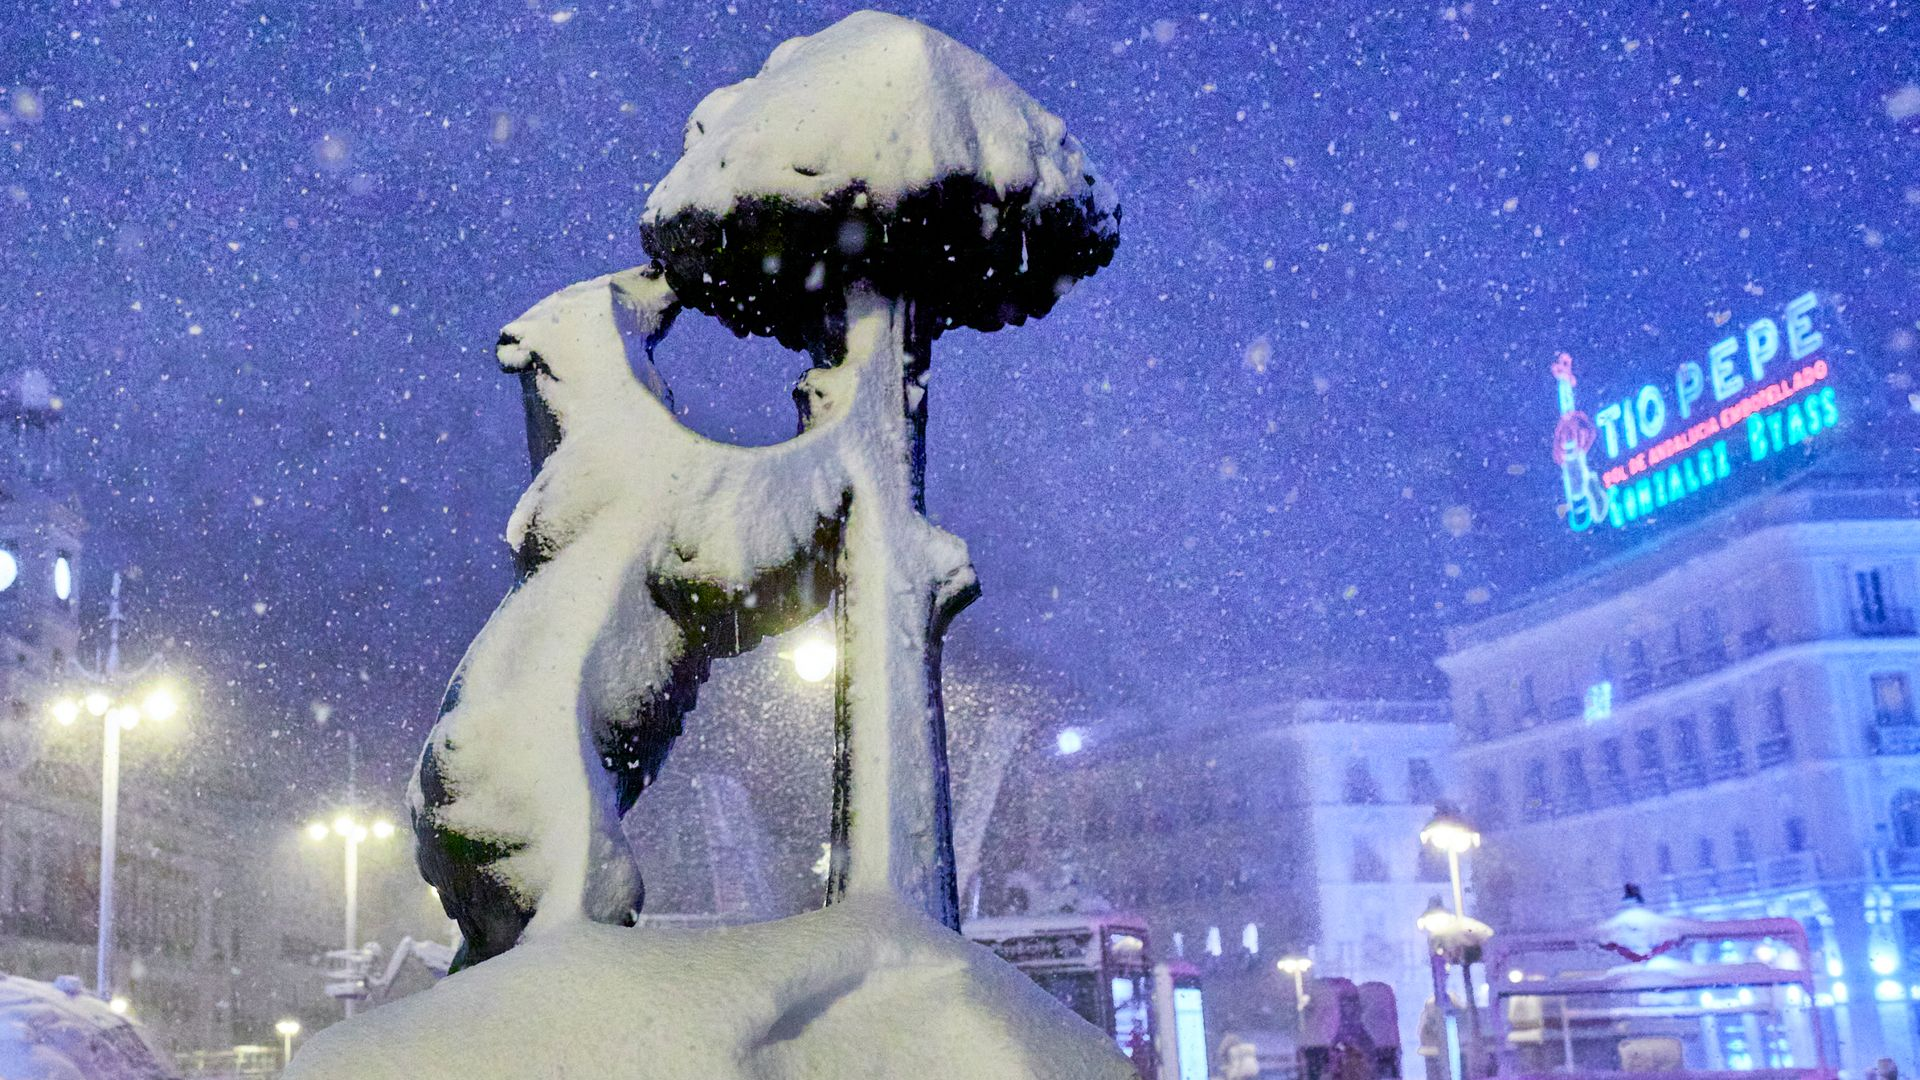 Atletico game off as snowstorm hits Spain